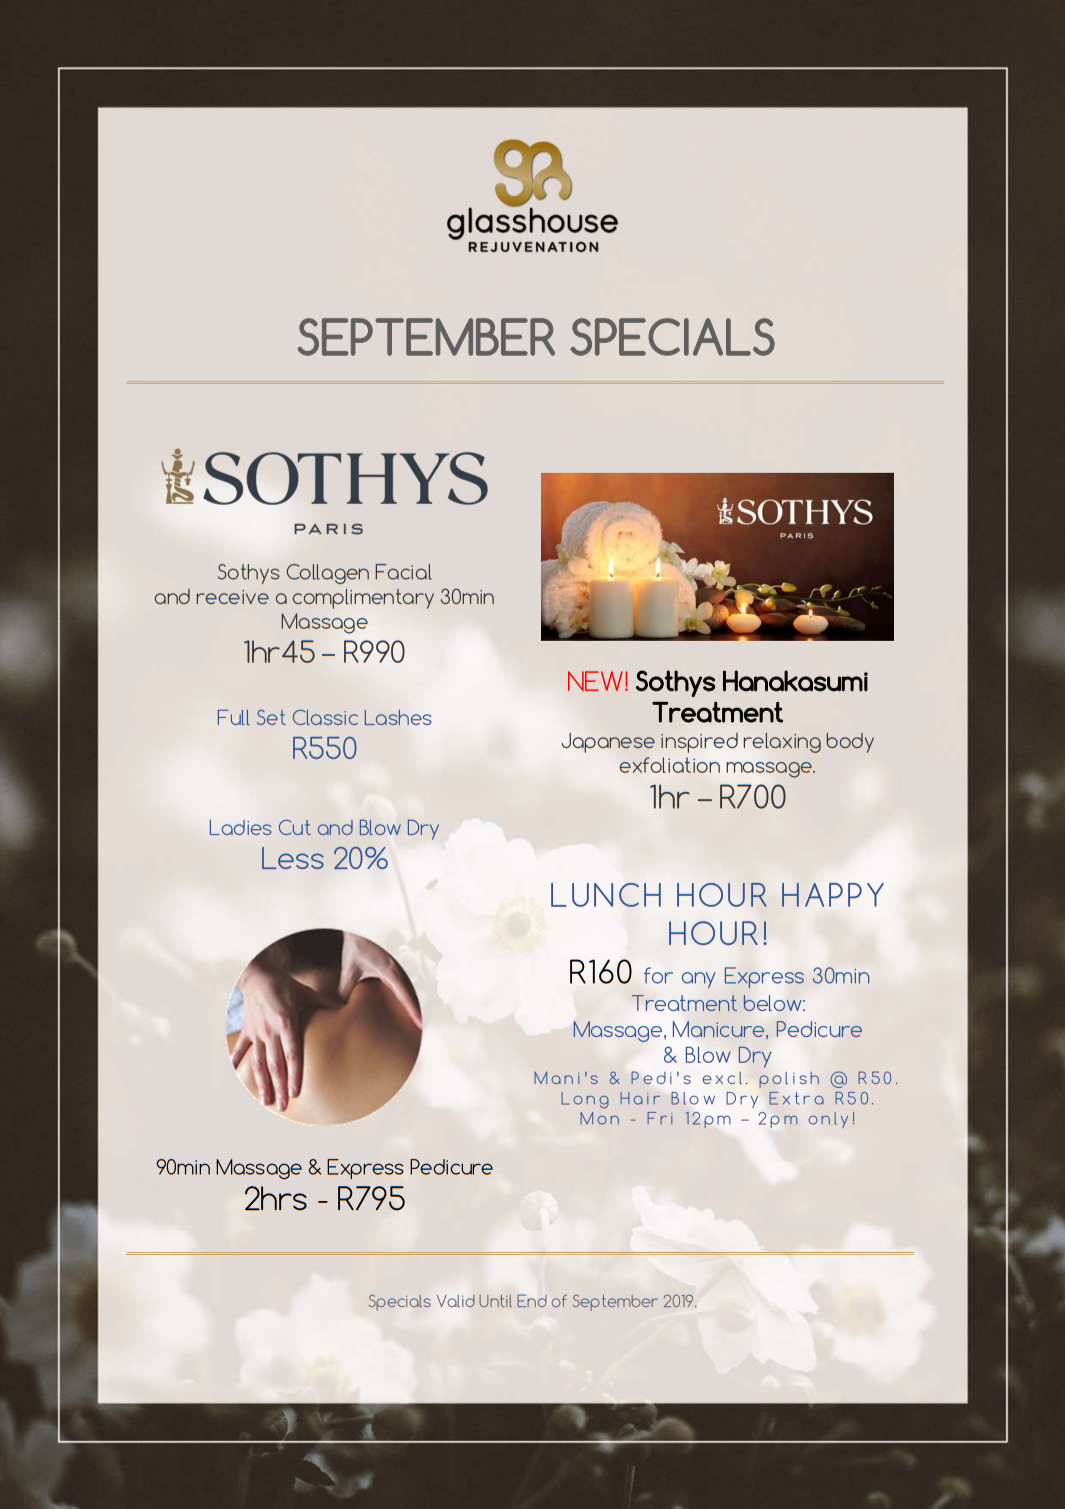 Glasshouse September Specials